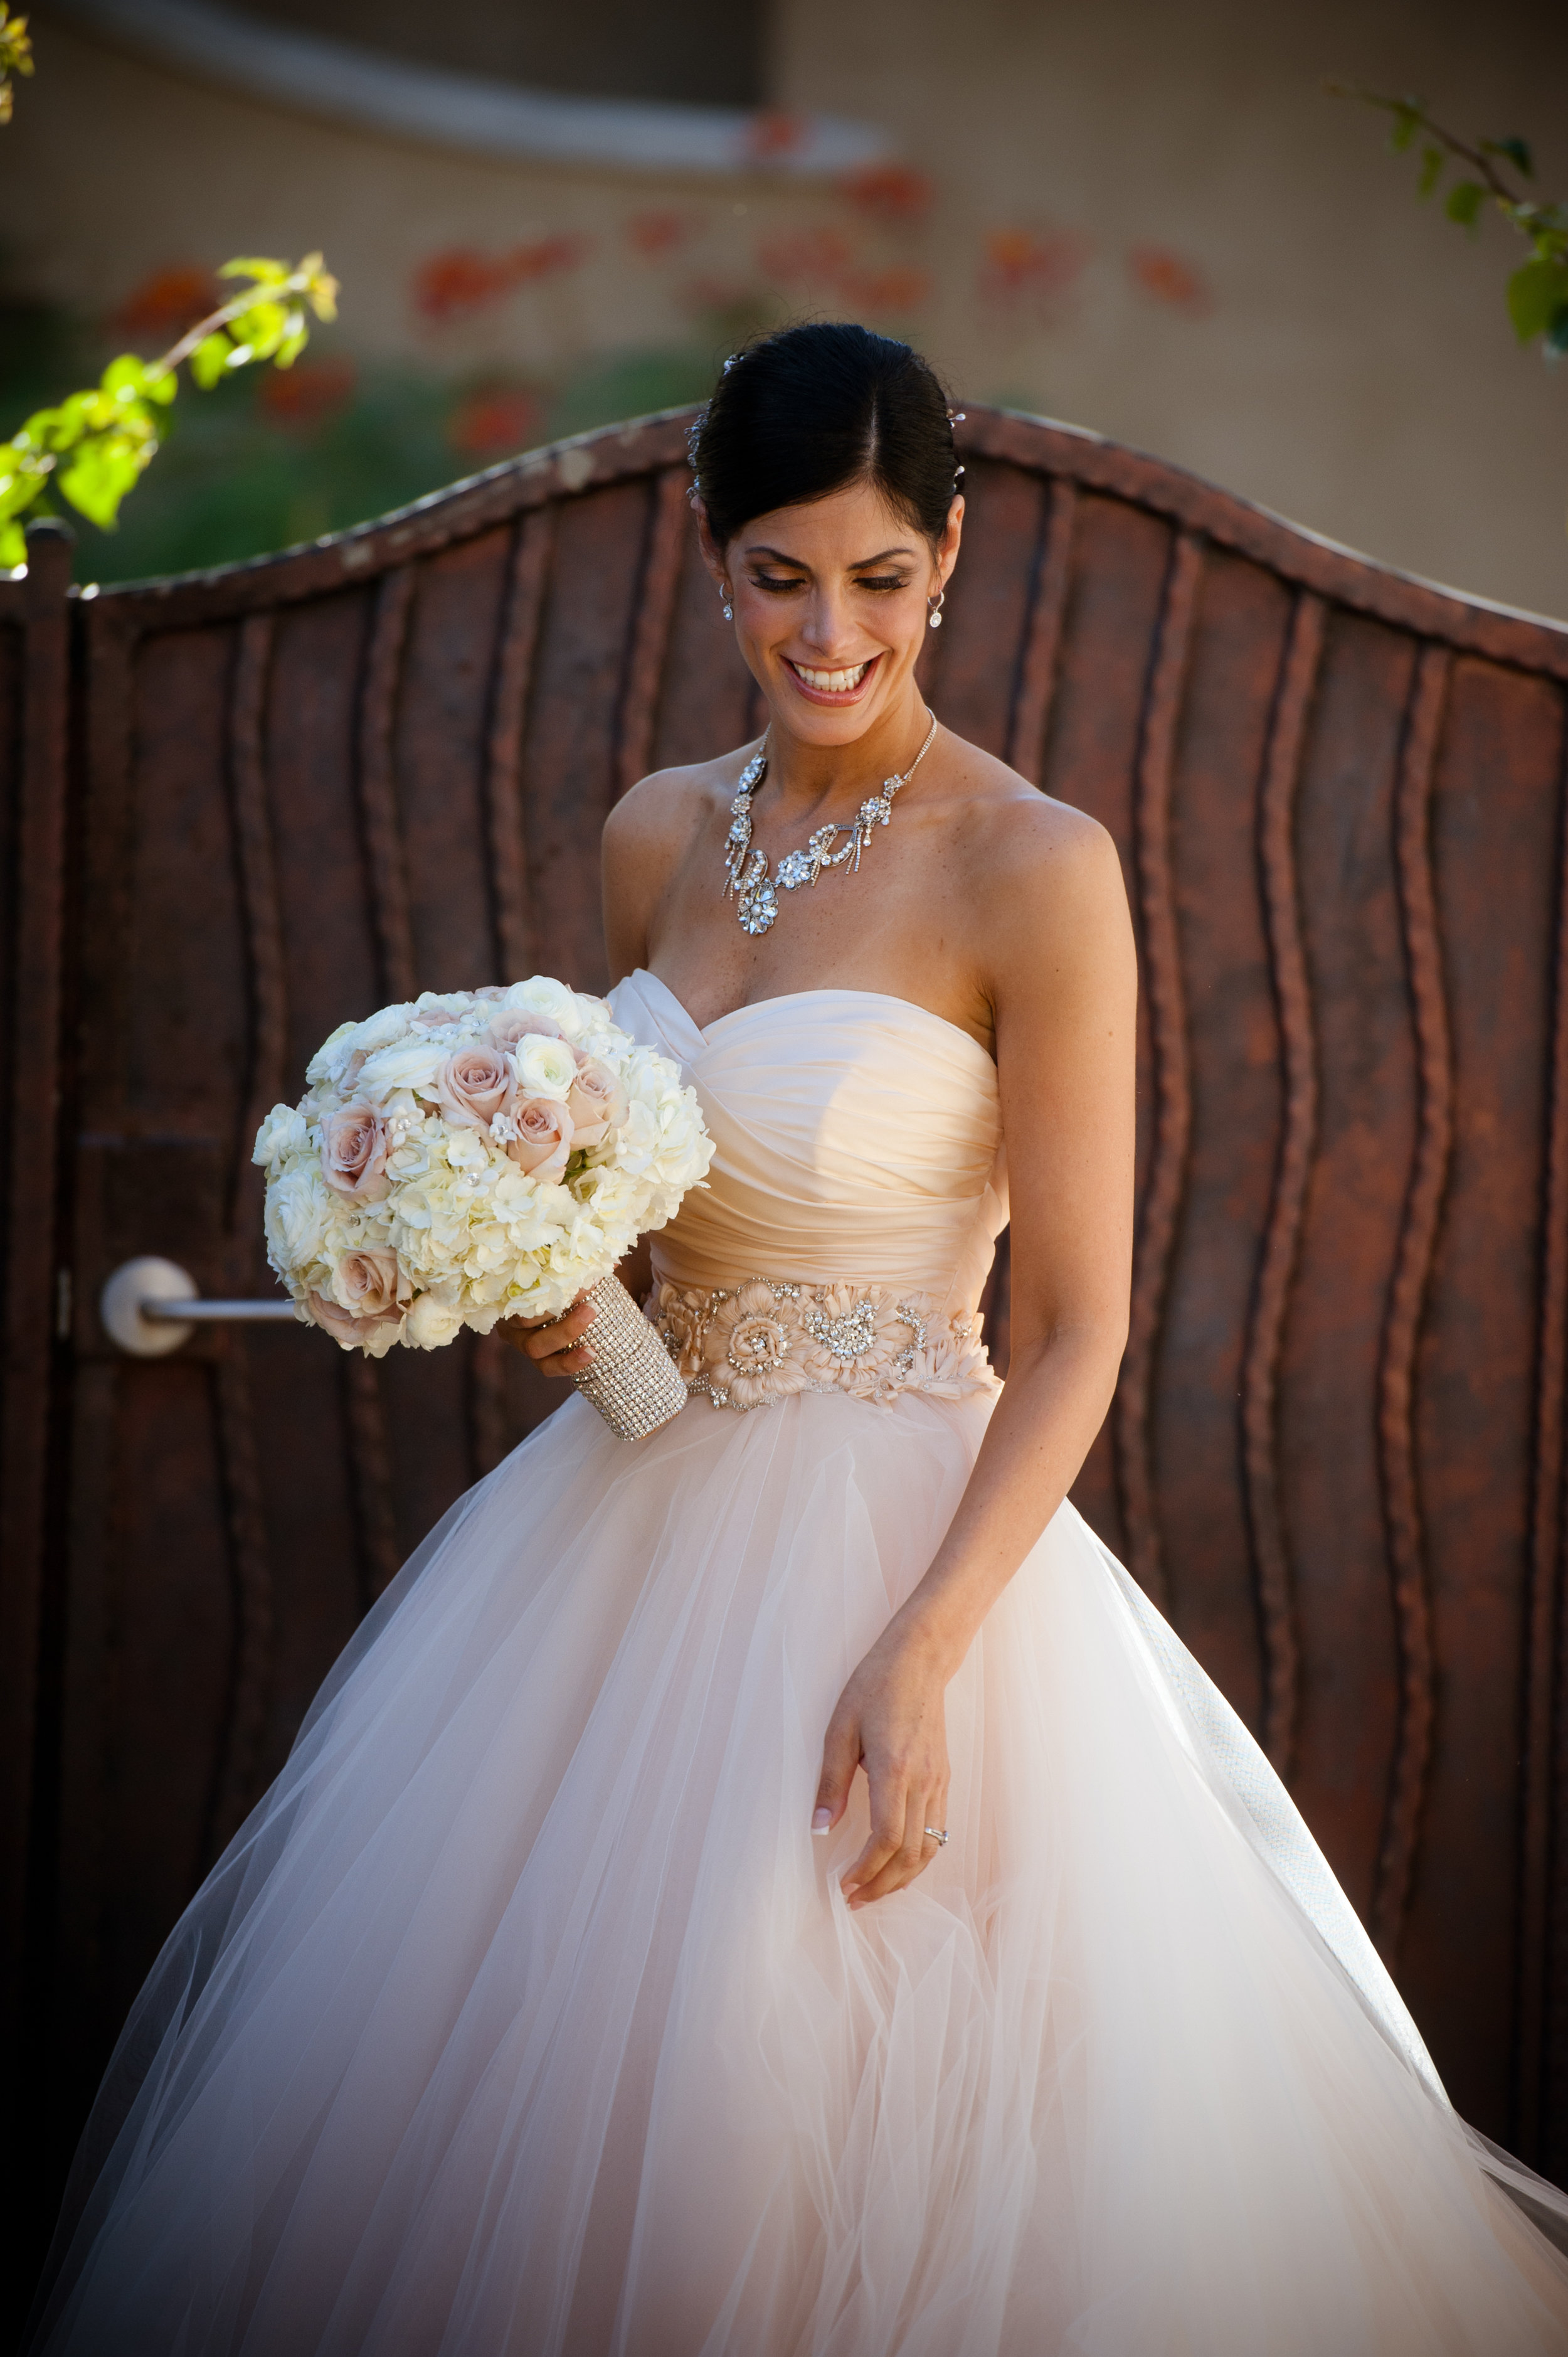 5 bride getting ready for first look bridal photos bride poses princess bride dress all white bouquet Christine Johnson Photography Life Design Events .jpg